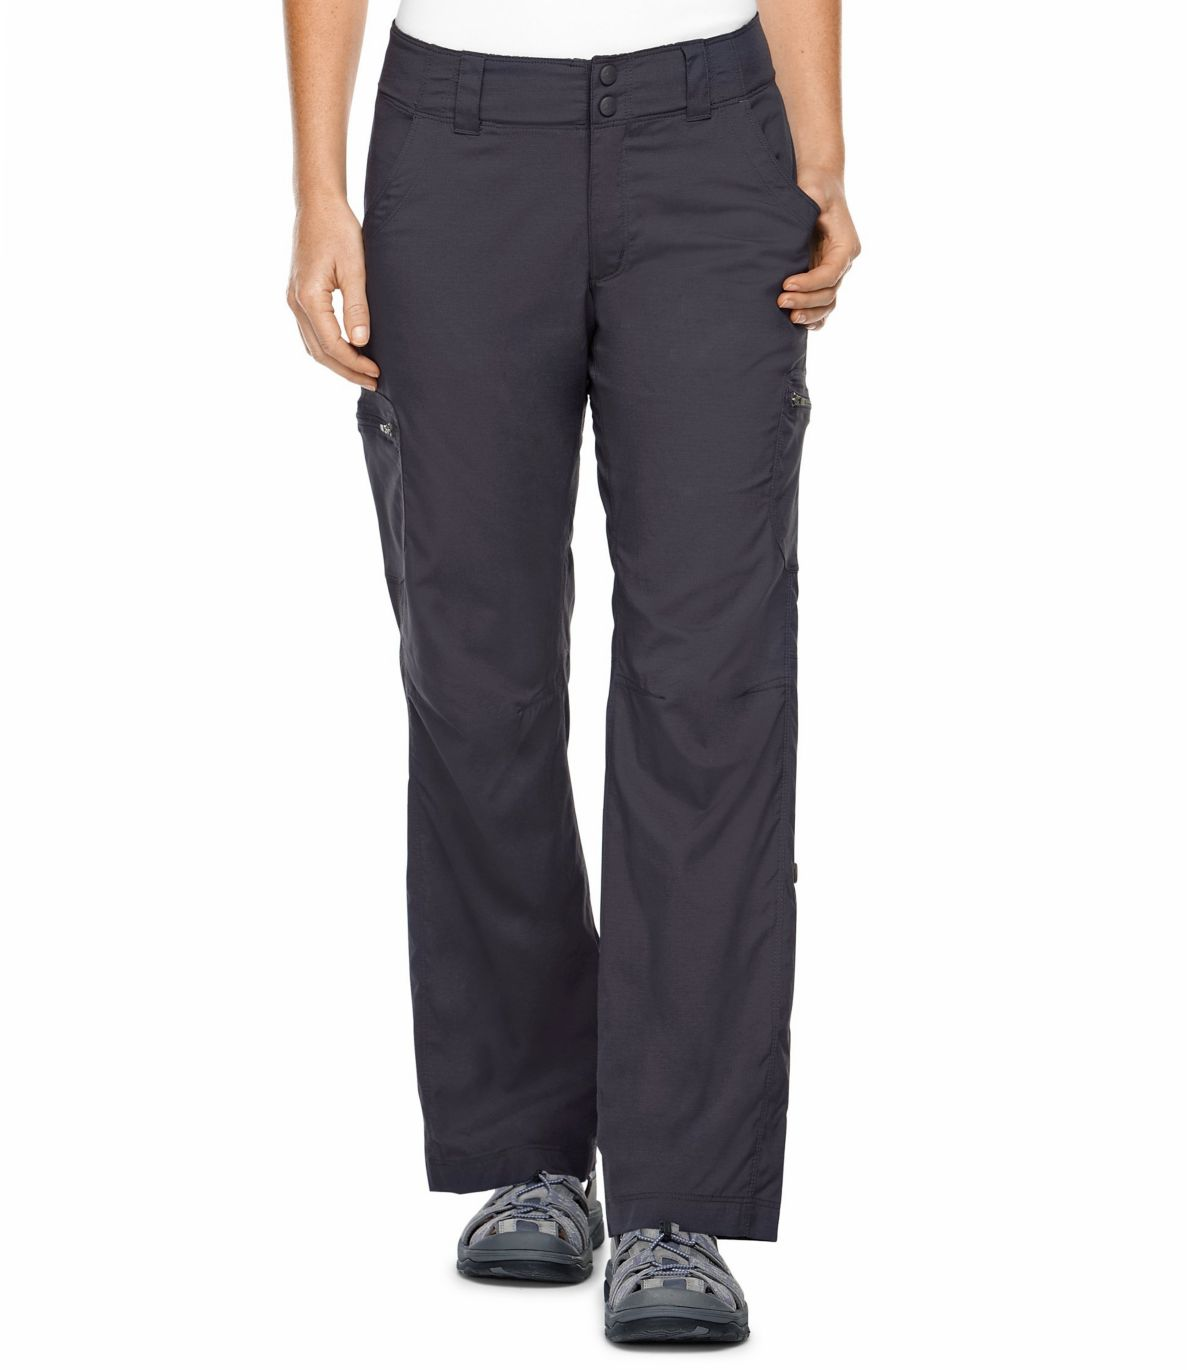 Women's Vista Trekking Pants